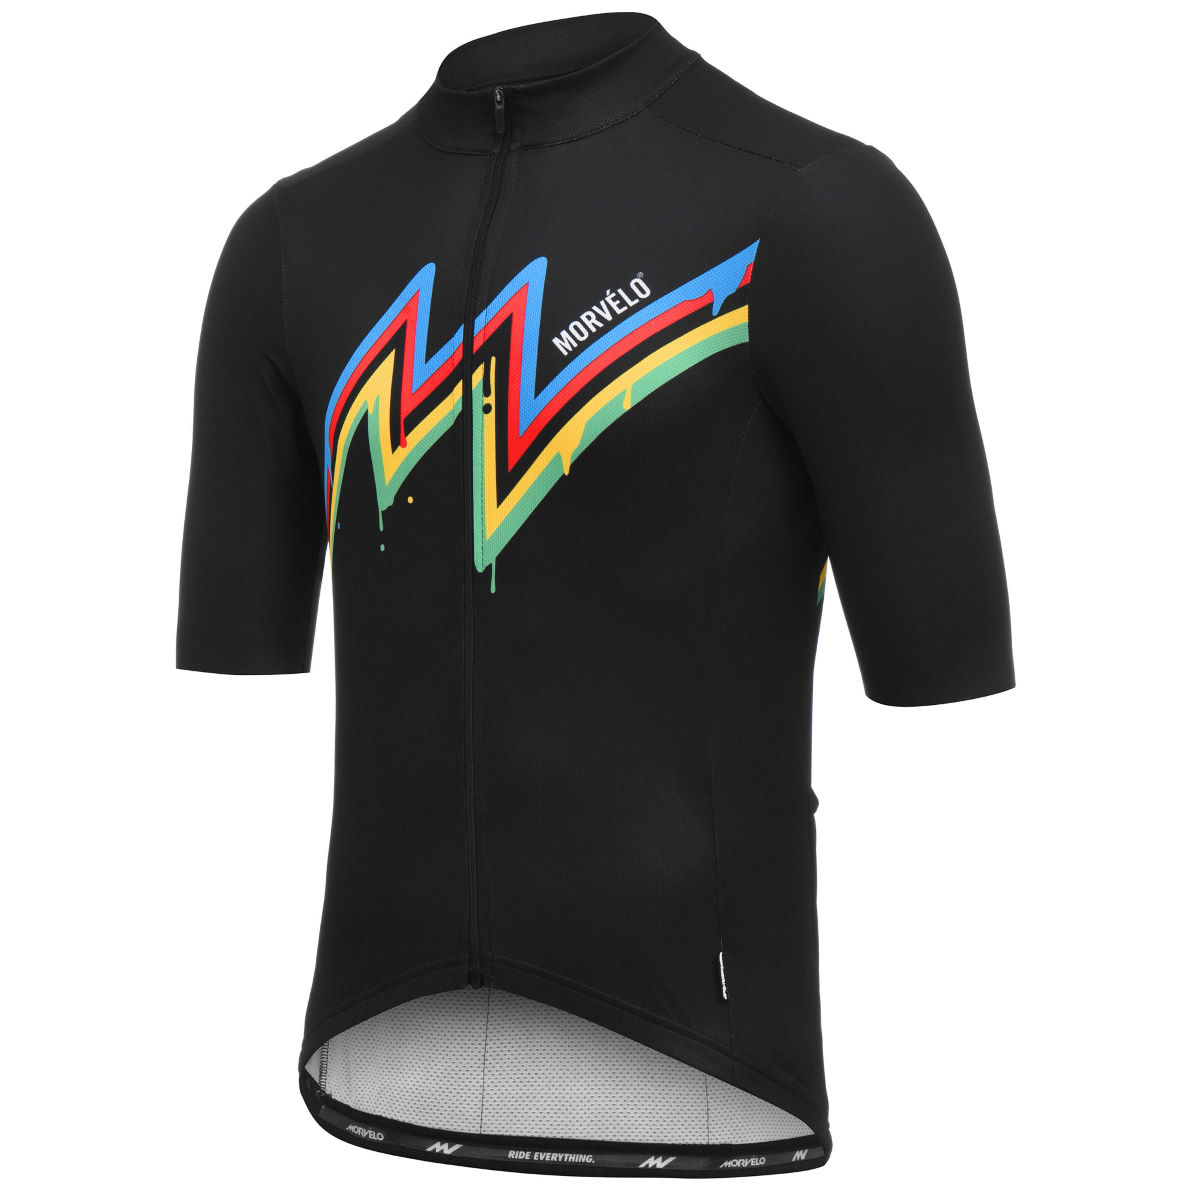 Maillot Morvélo 10 Year Celebration Stripes - Maillots